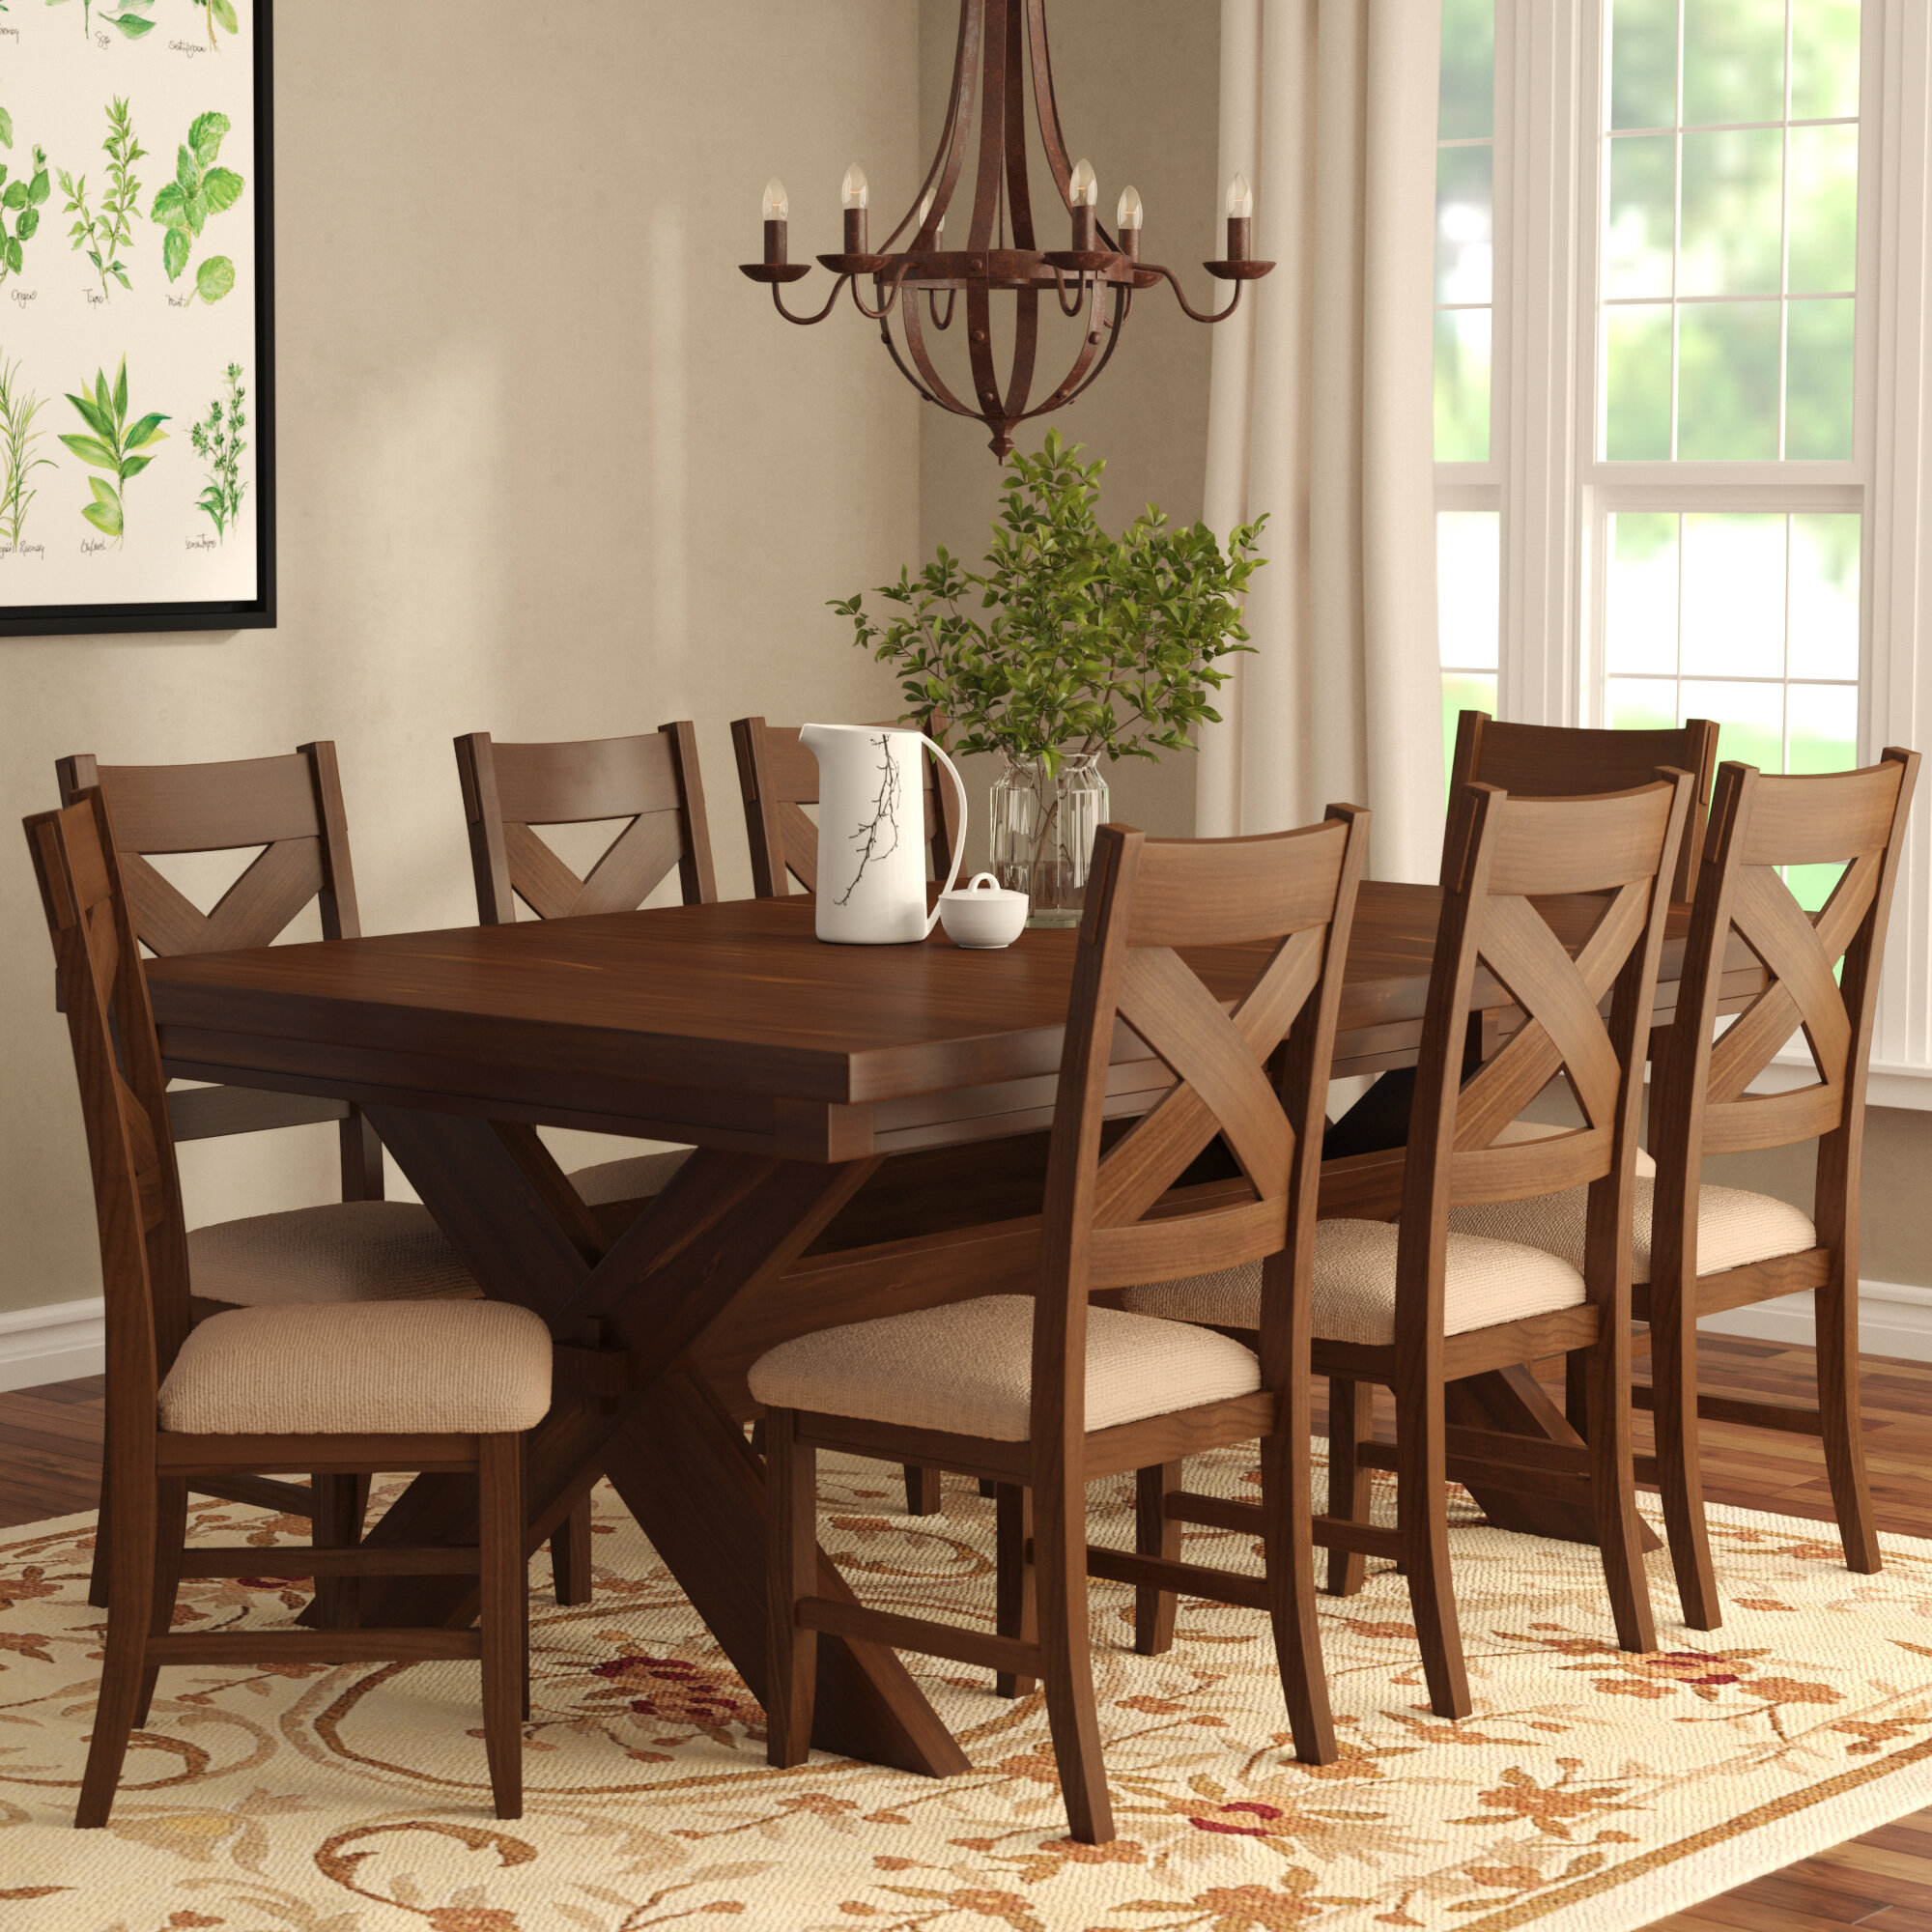 Laurel Foundry Modern Farmhouse Isabell 9 Piece Dining Set Reviews